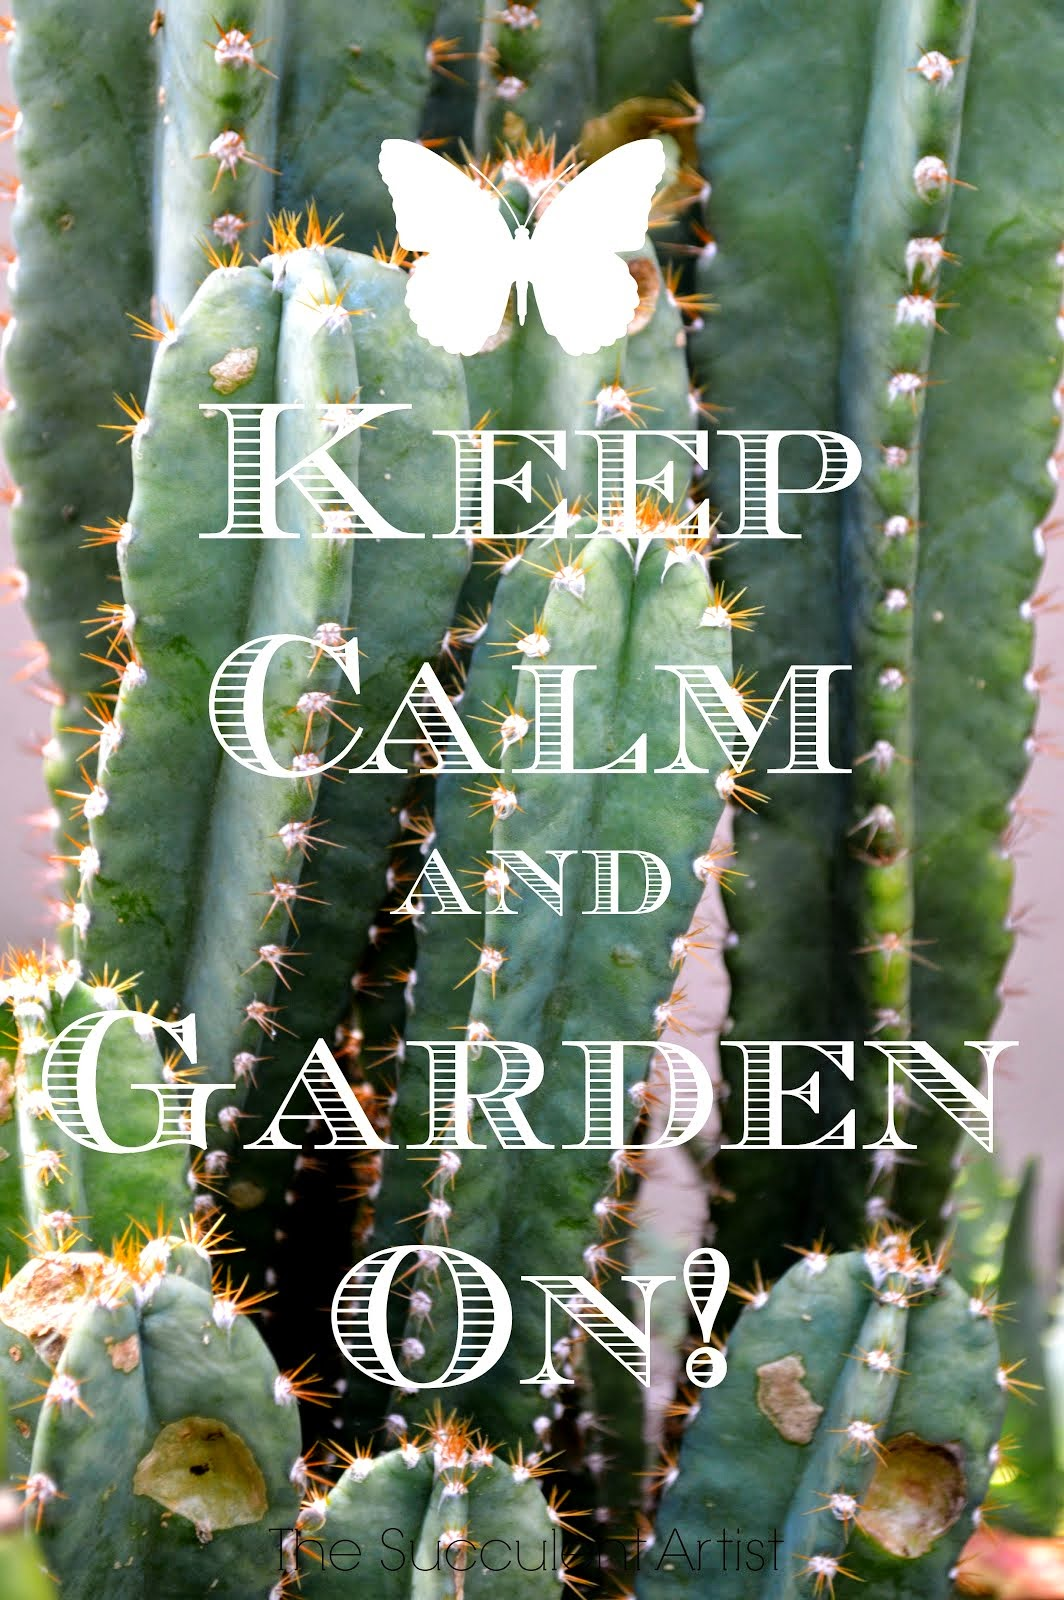 Keep Calm and Garden On! - I LOVE Succulents photo - Succulents and cacti oh my!- photography by Cat